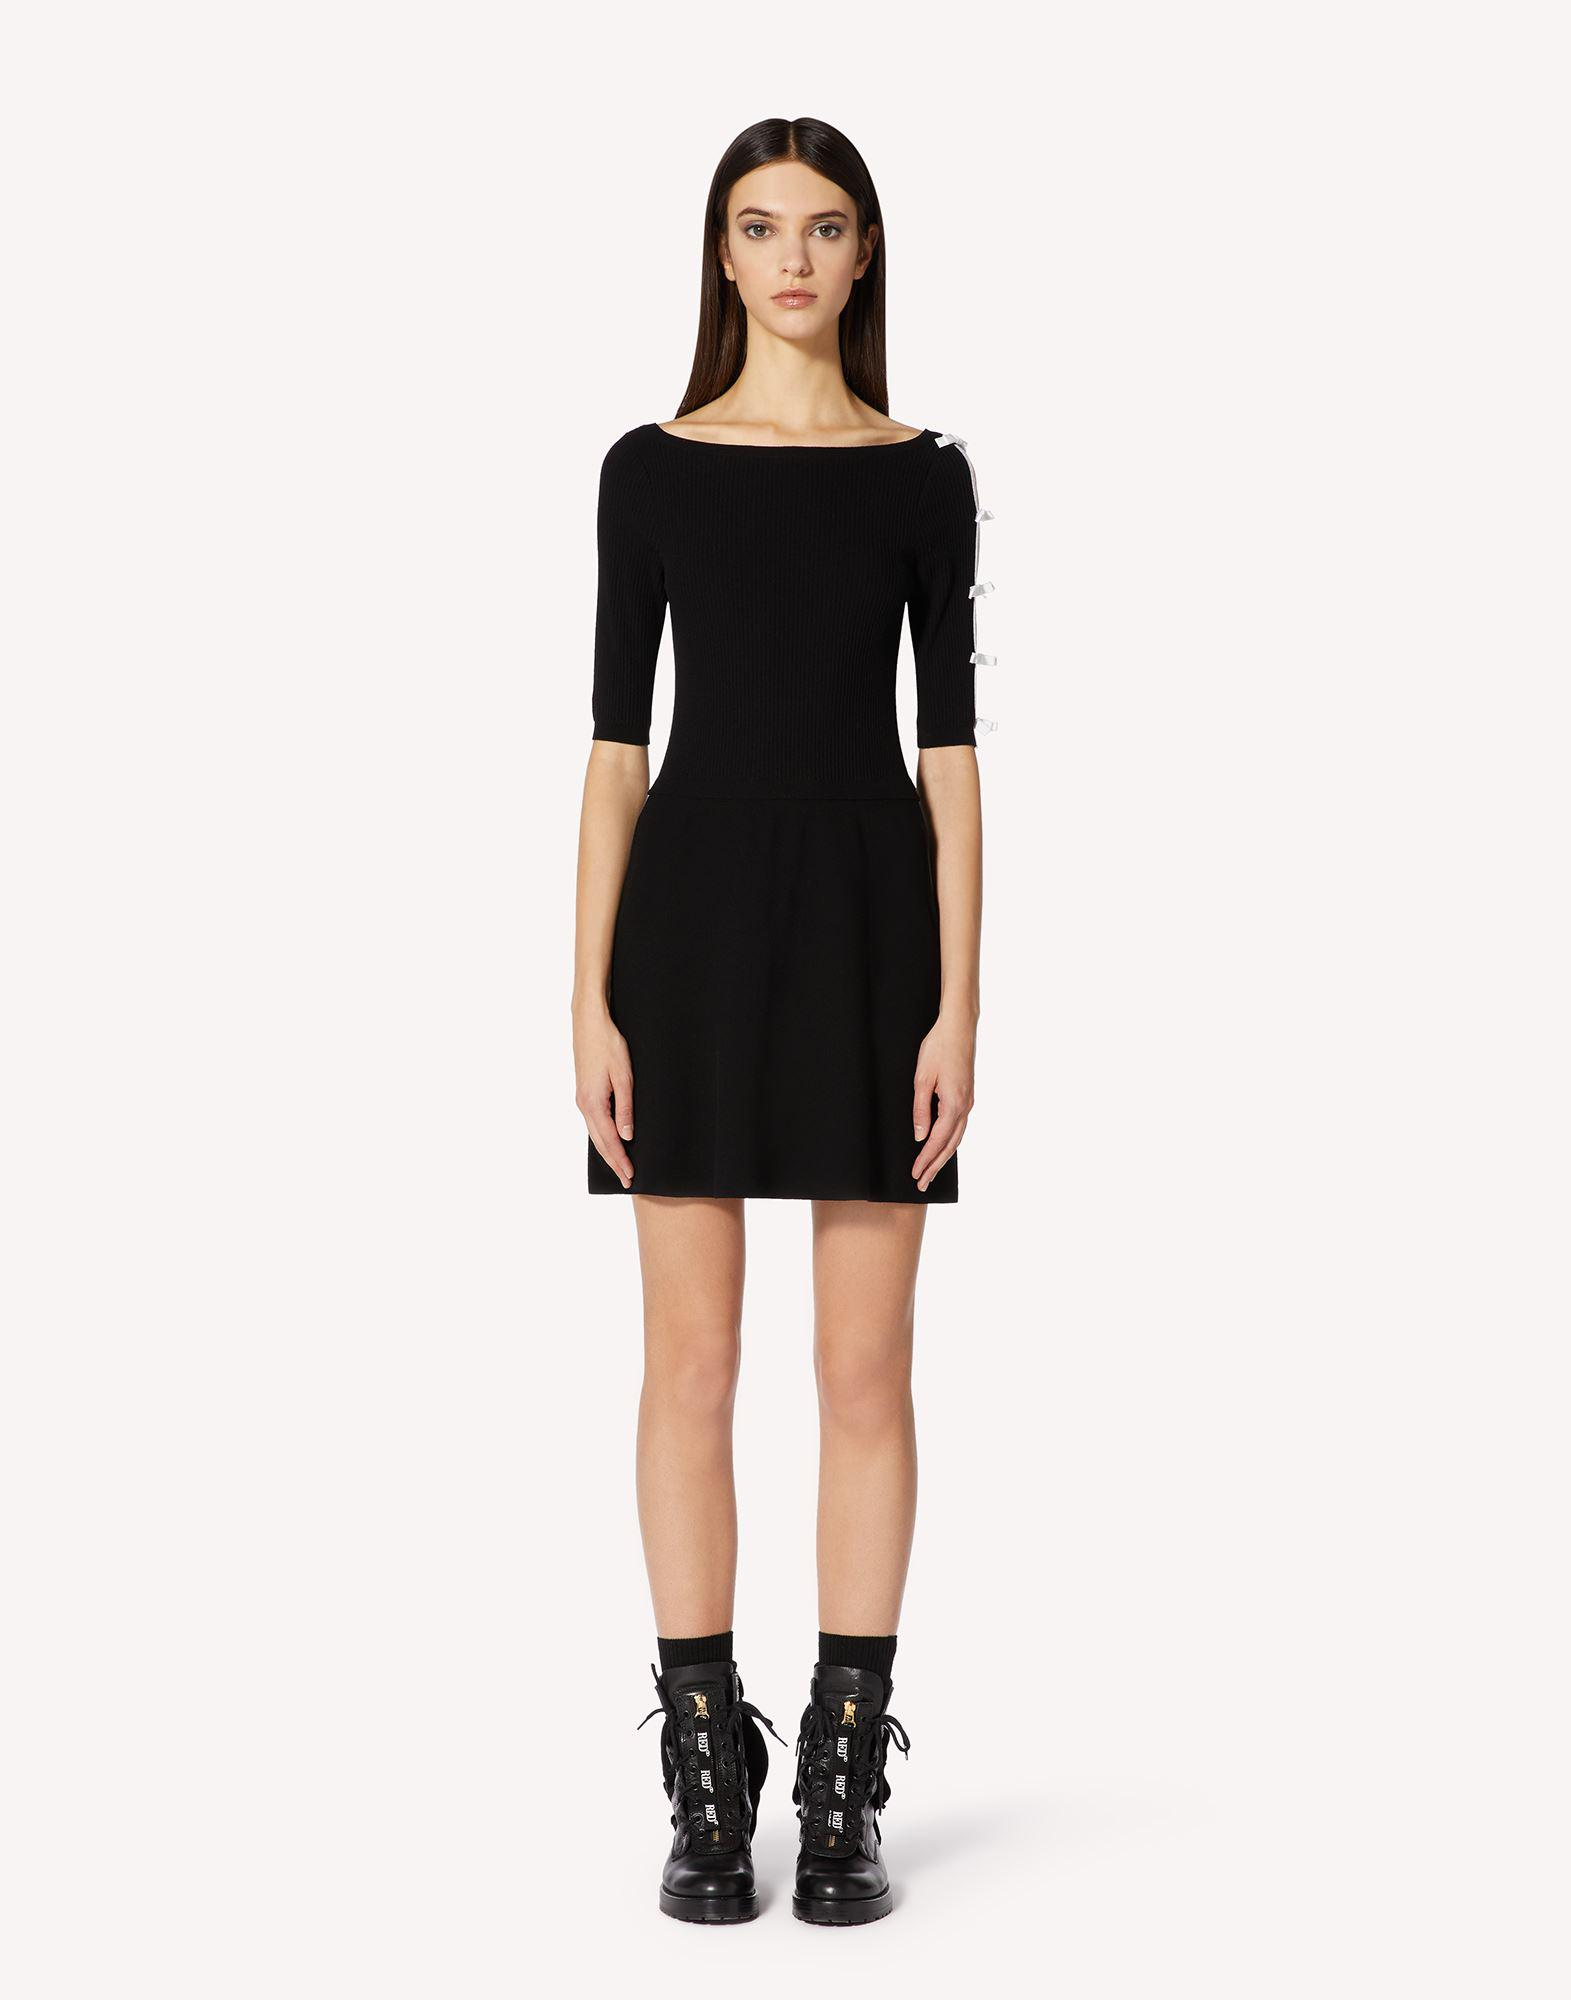 STRETCH VISCOSE KNIT DRESS WITH BOW DETAILS